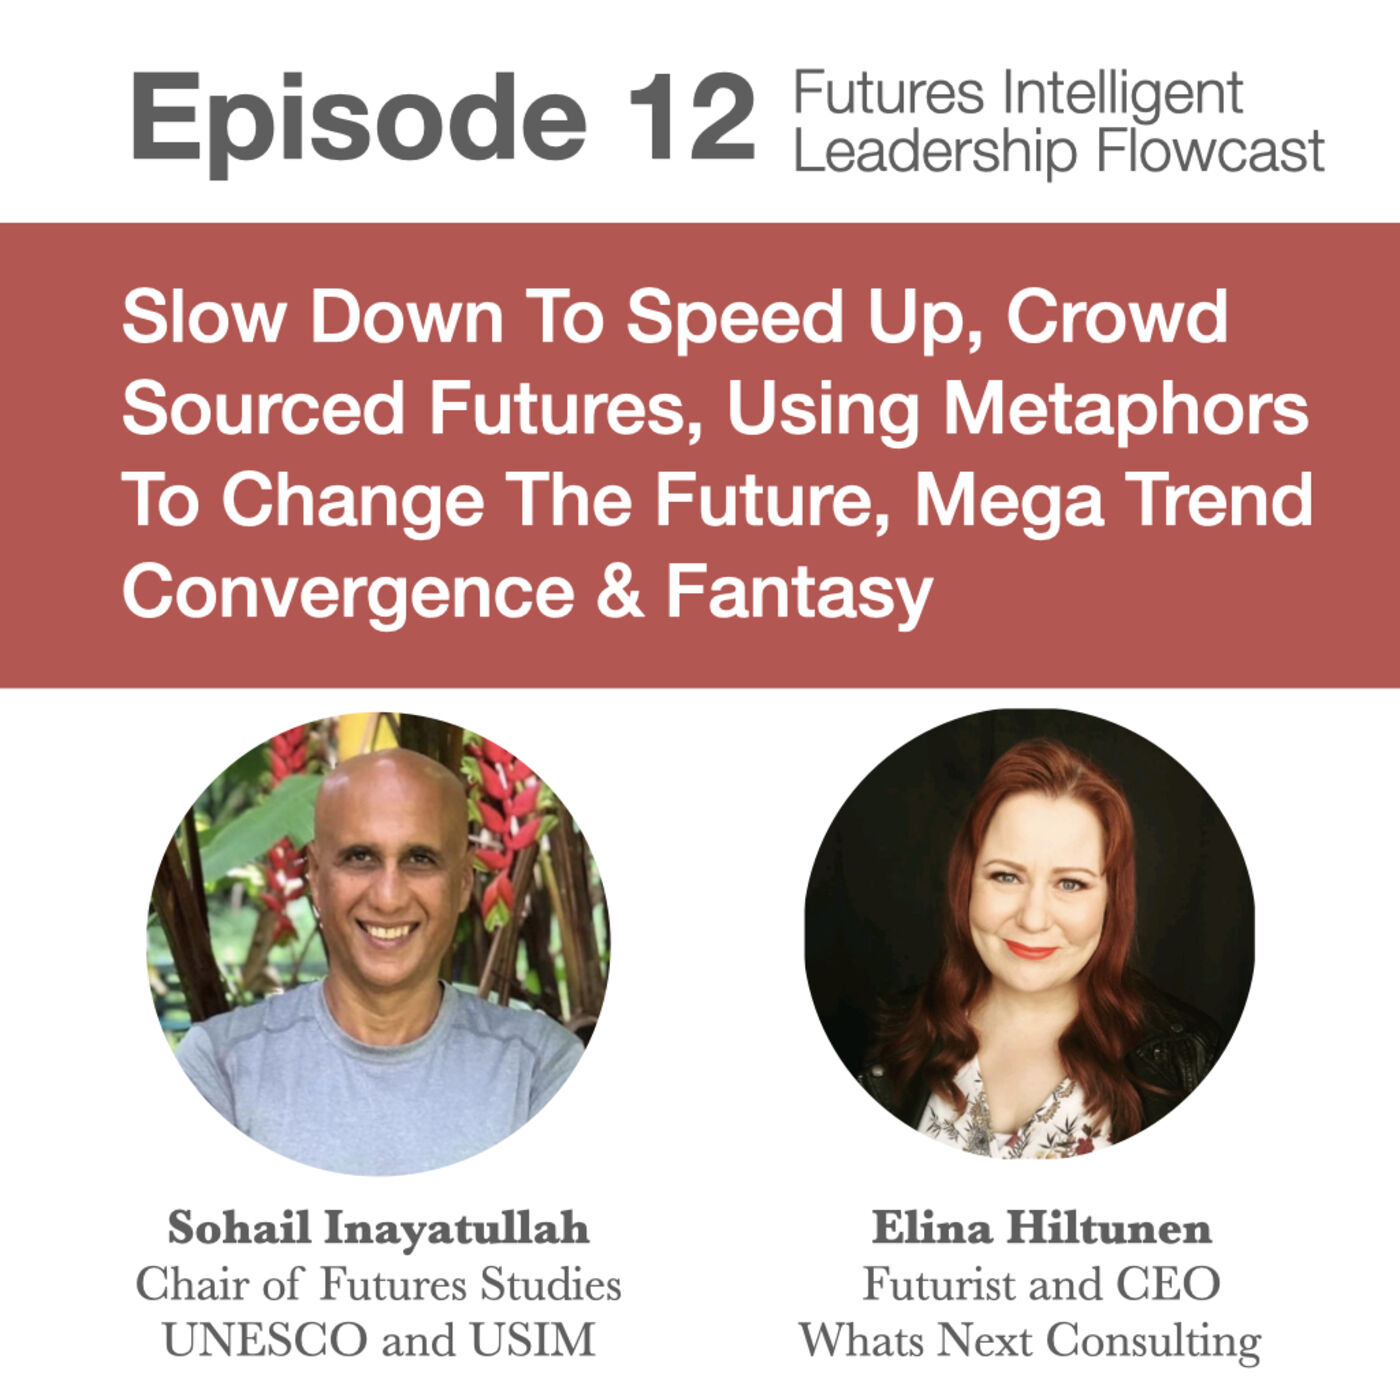 Episode 12: Slow Down To Speed Up, Crowd Sourced Futures, Using Metaphors To Change The Future, Mega Trend Convergence & Fantasy